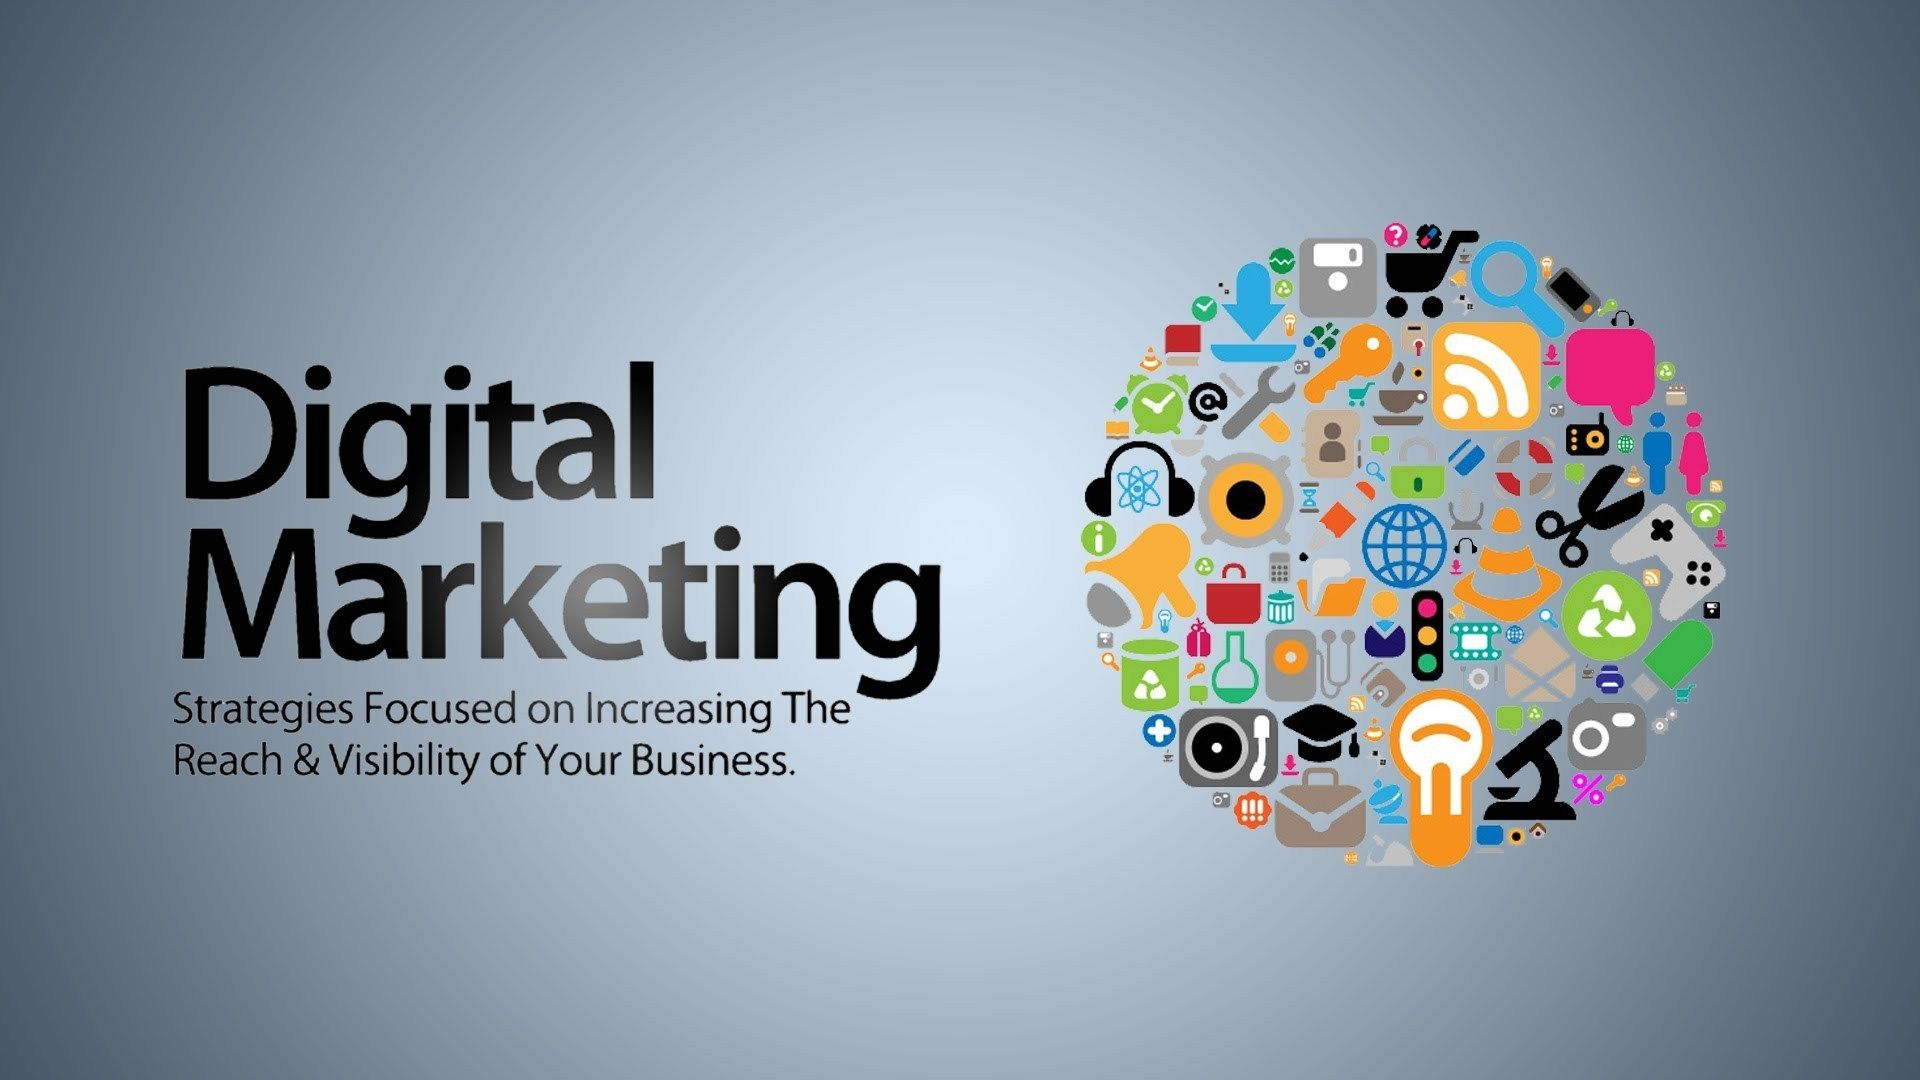 Digital Marketing Top 10 Websites Apps To Learn For Free Edigital Afri Best Digital Marketing Company Digital Marketing Training Digital Marketing Strategy